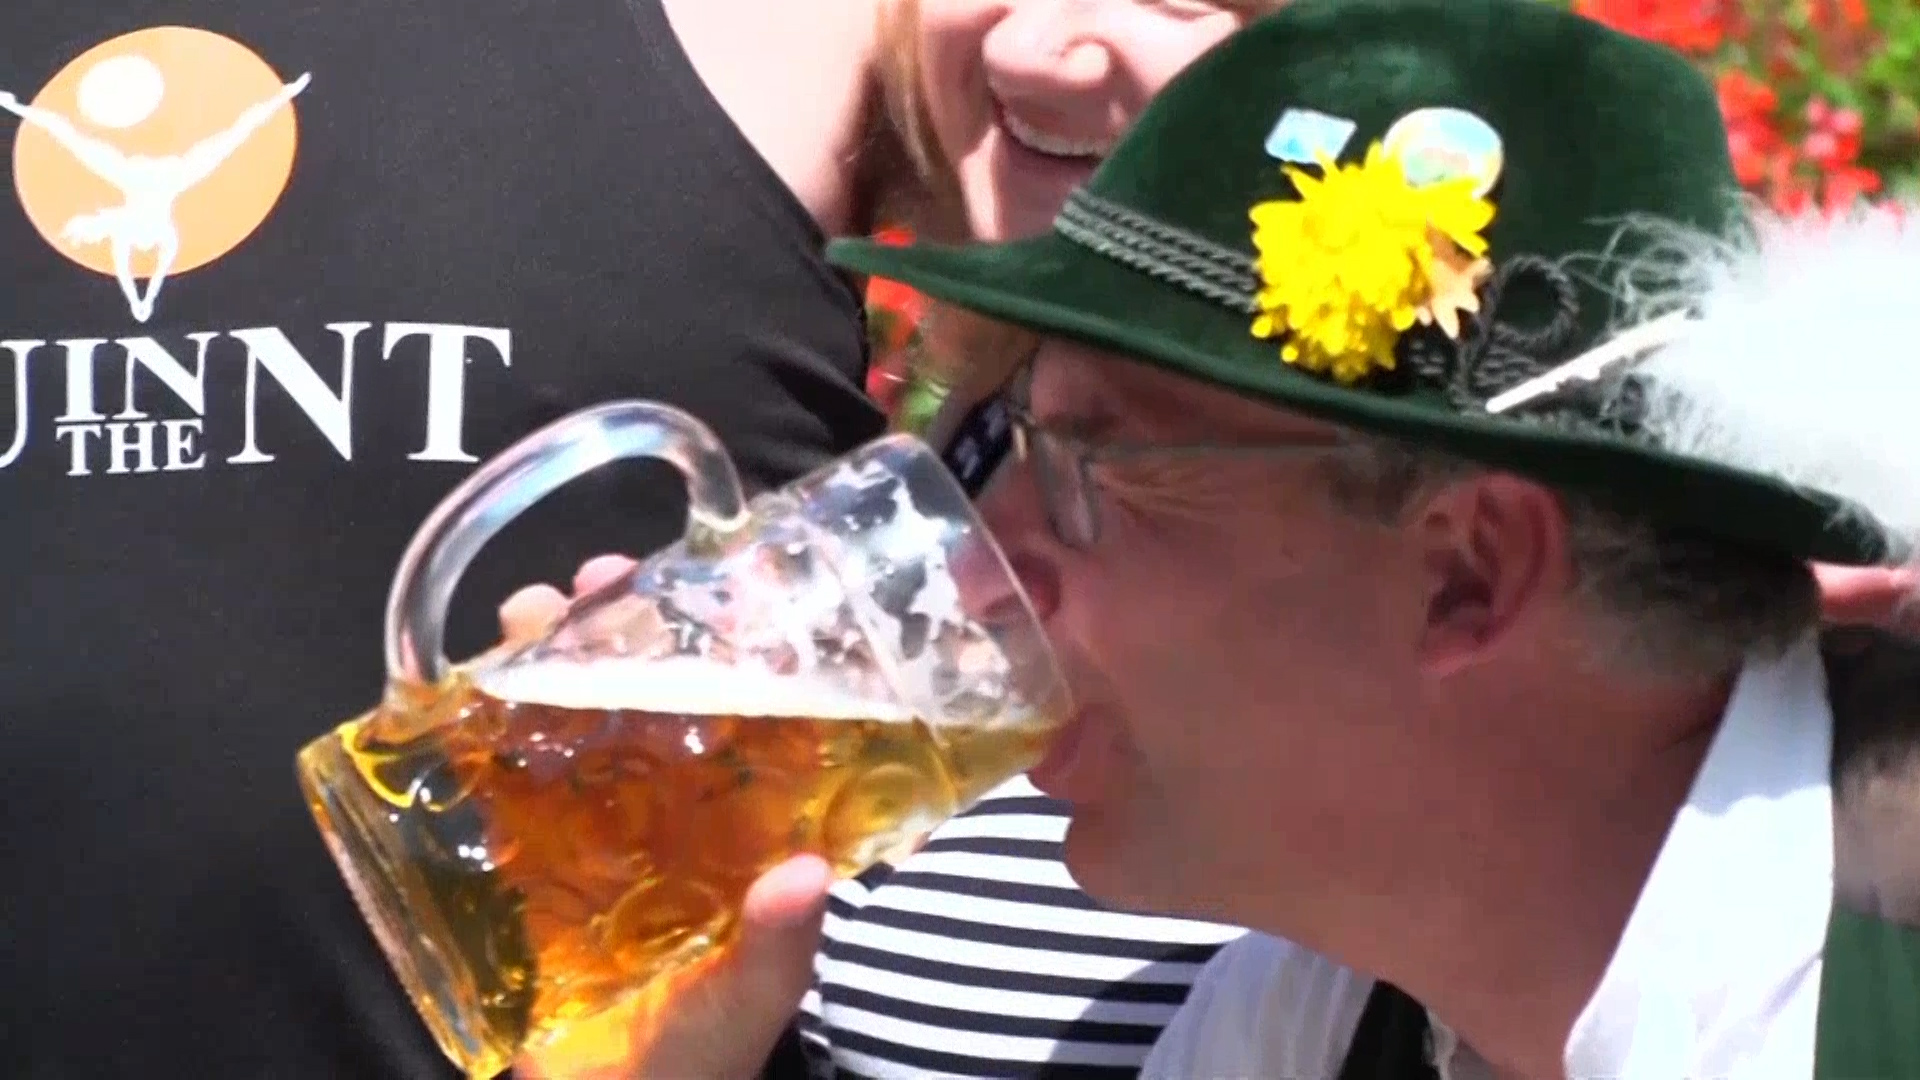 germany beer crisis.00_00_04_29.Still001_1534384560700.jpg.jpg